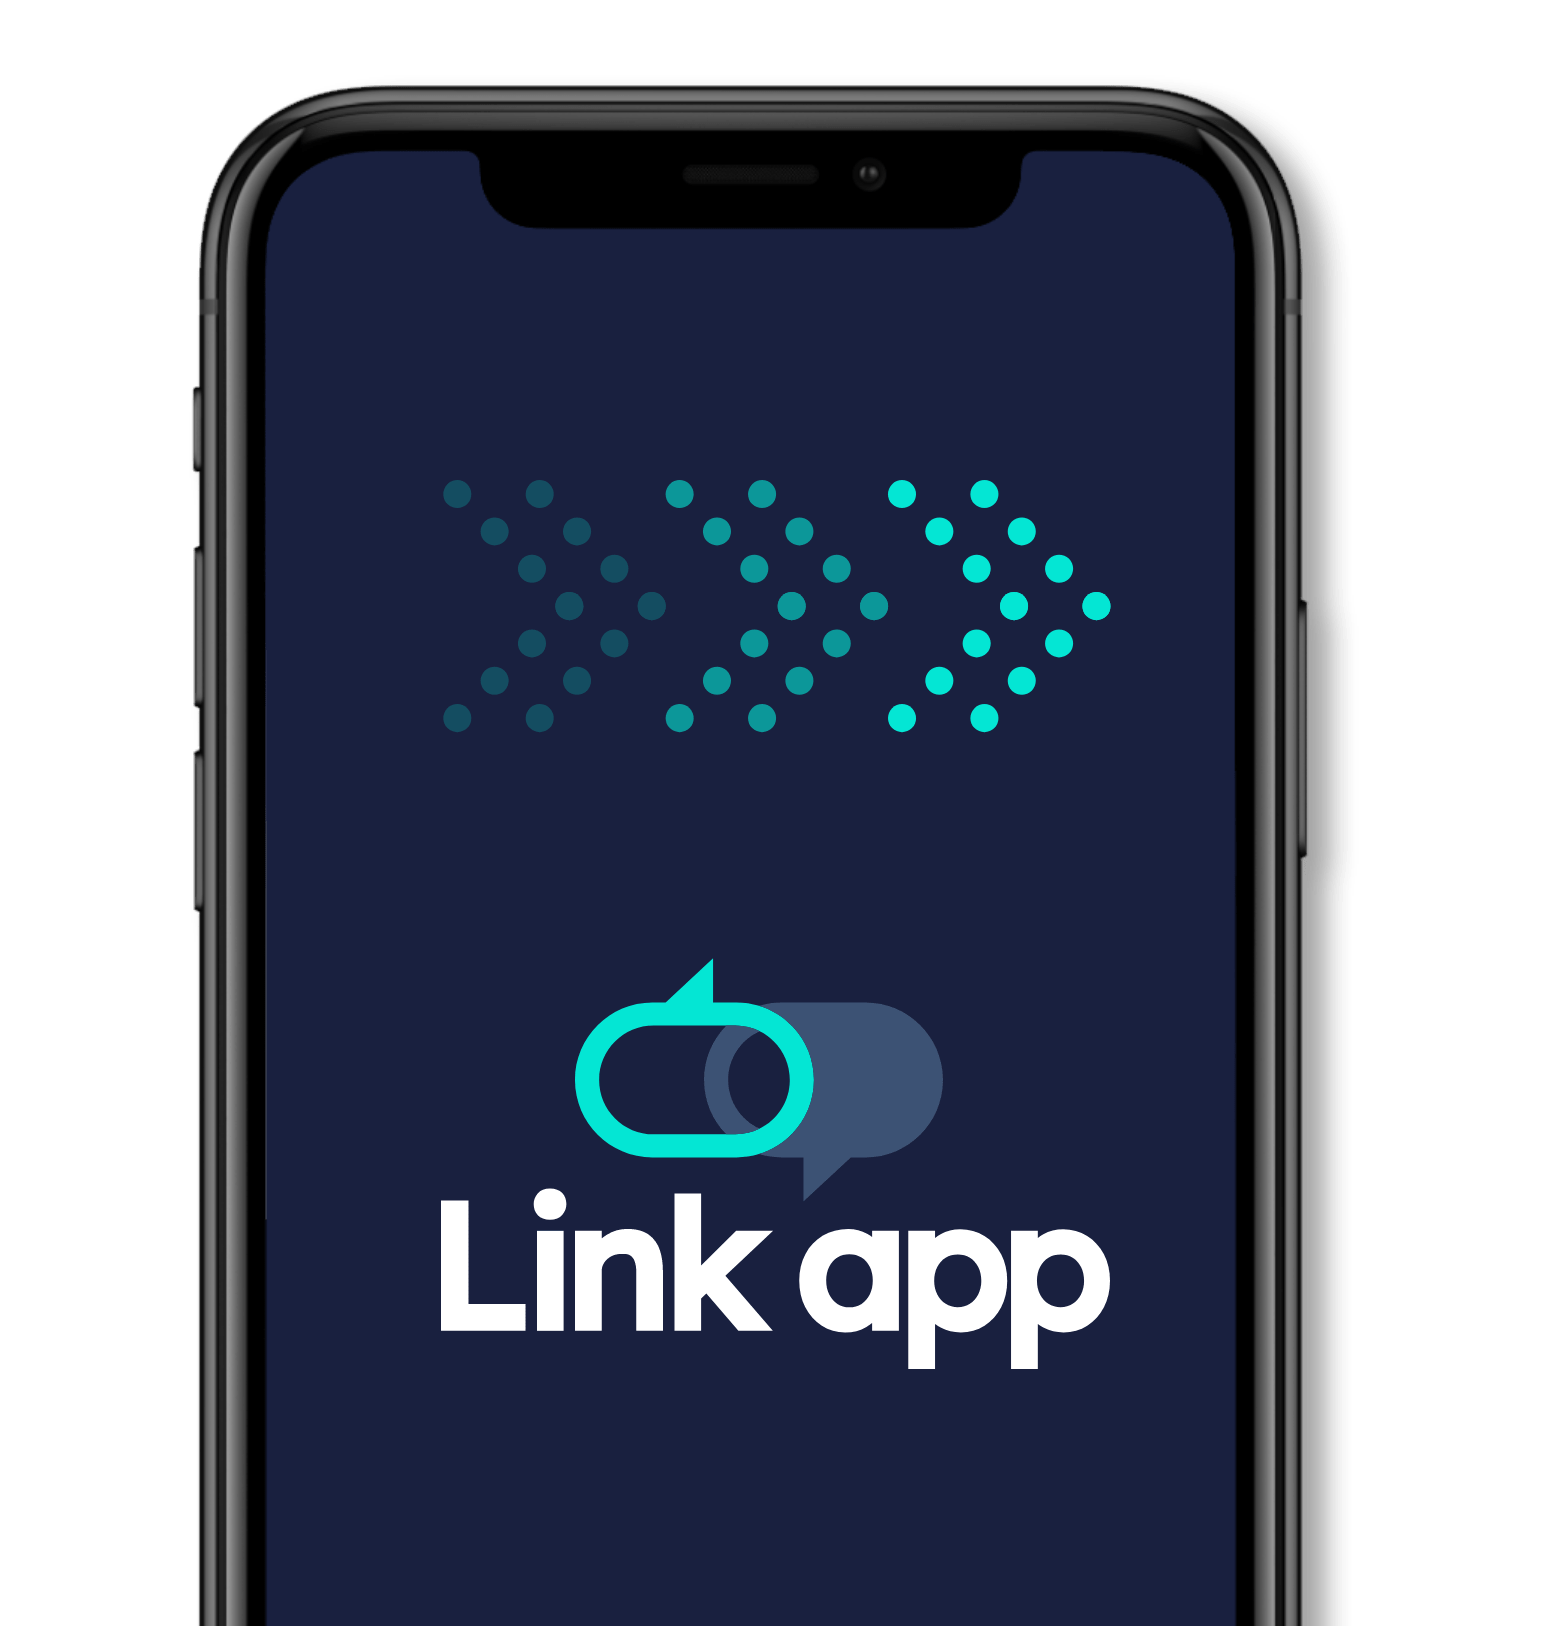 The Link App logo on mobile